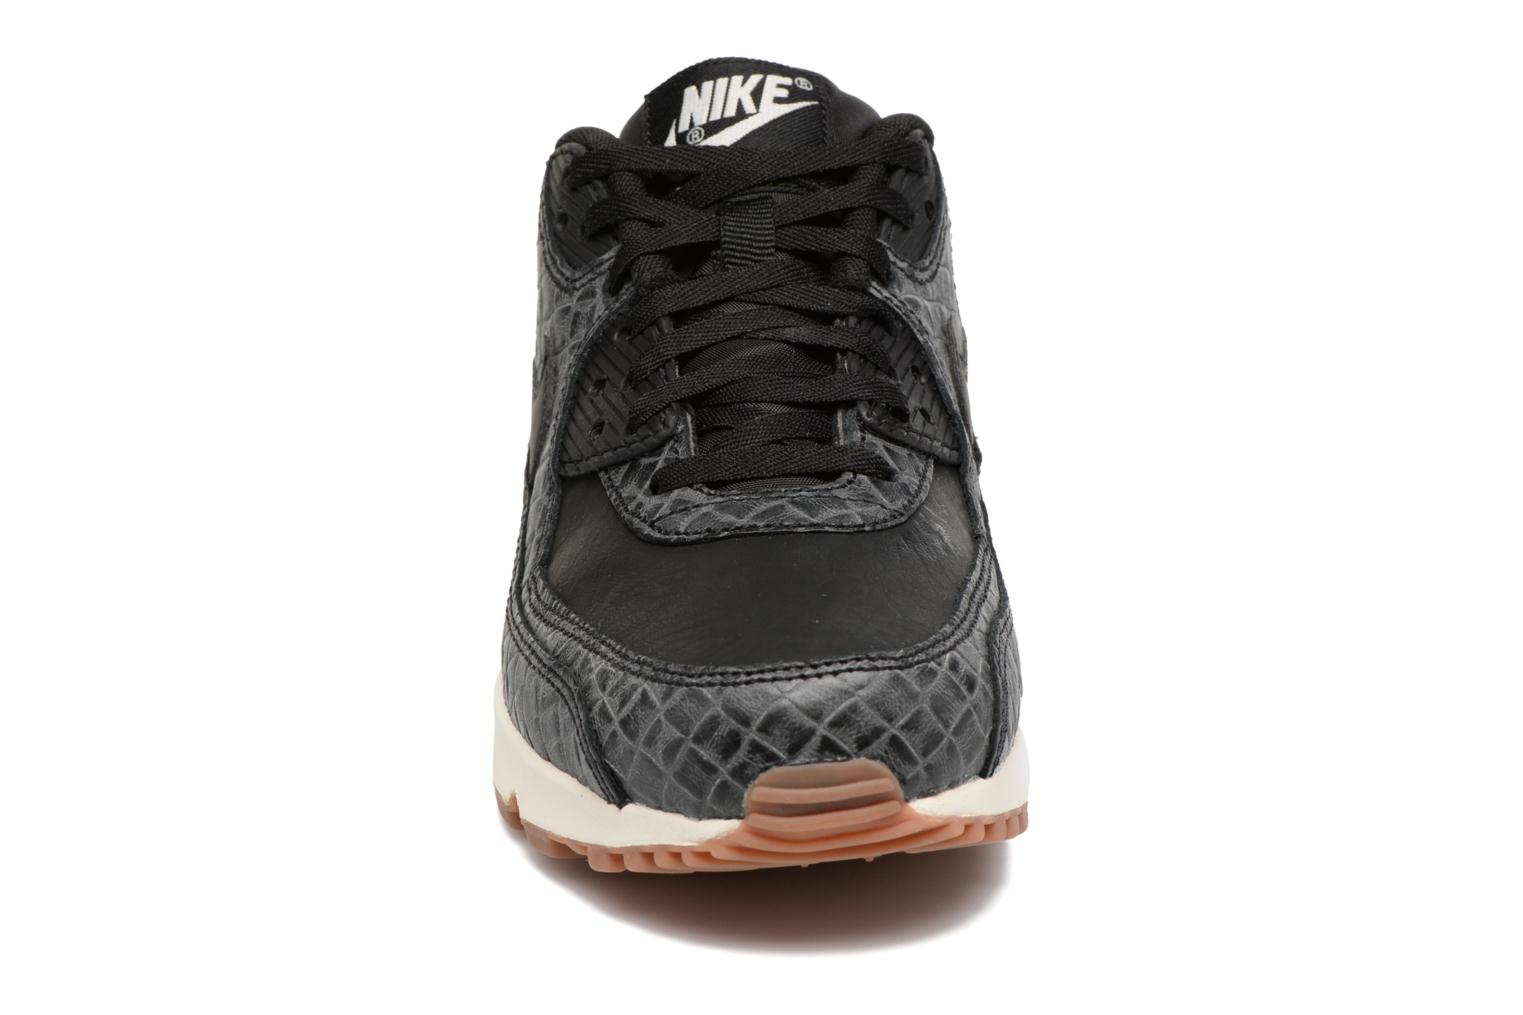 Wmns Air Max 90 Prem Black/black-sail-gum med brown